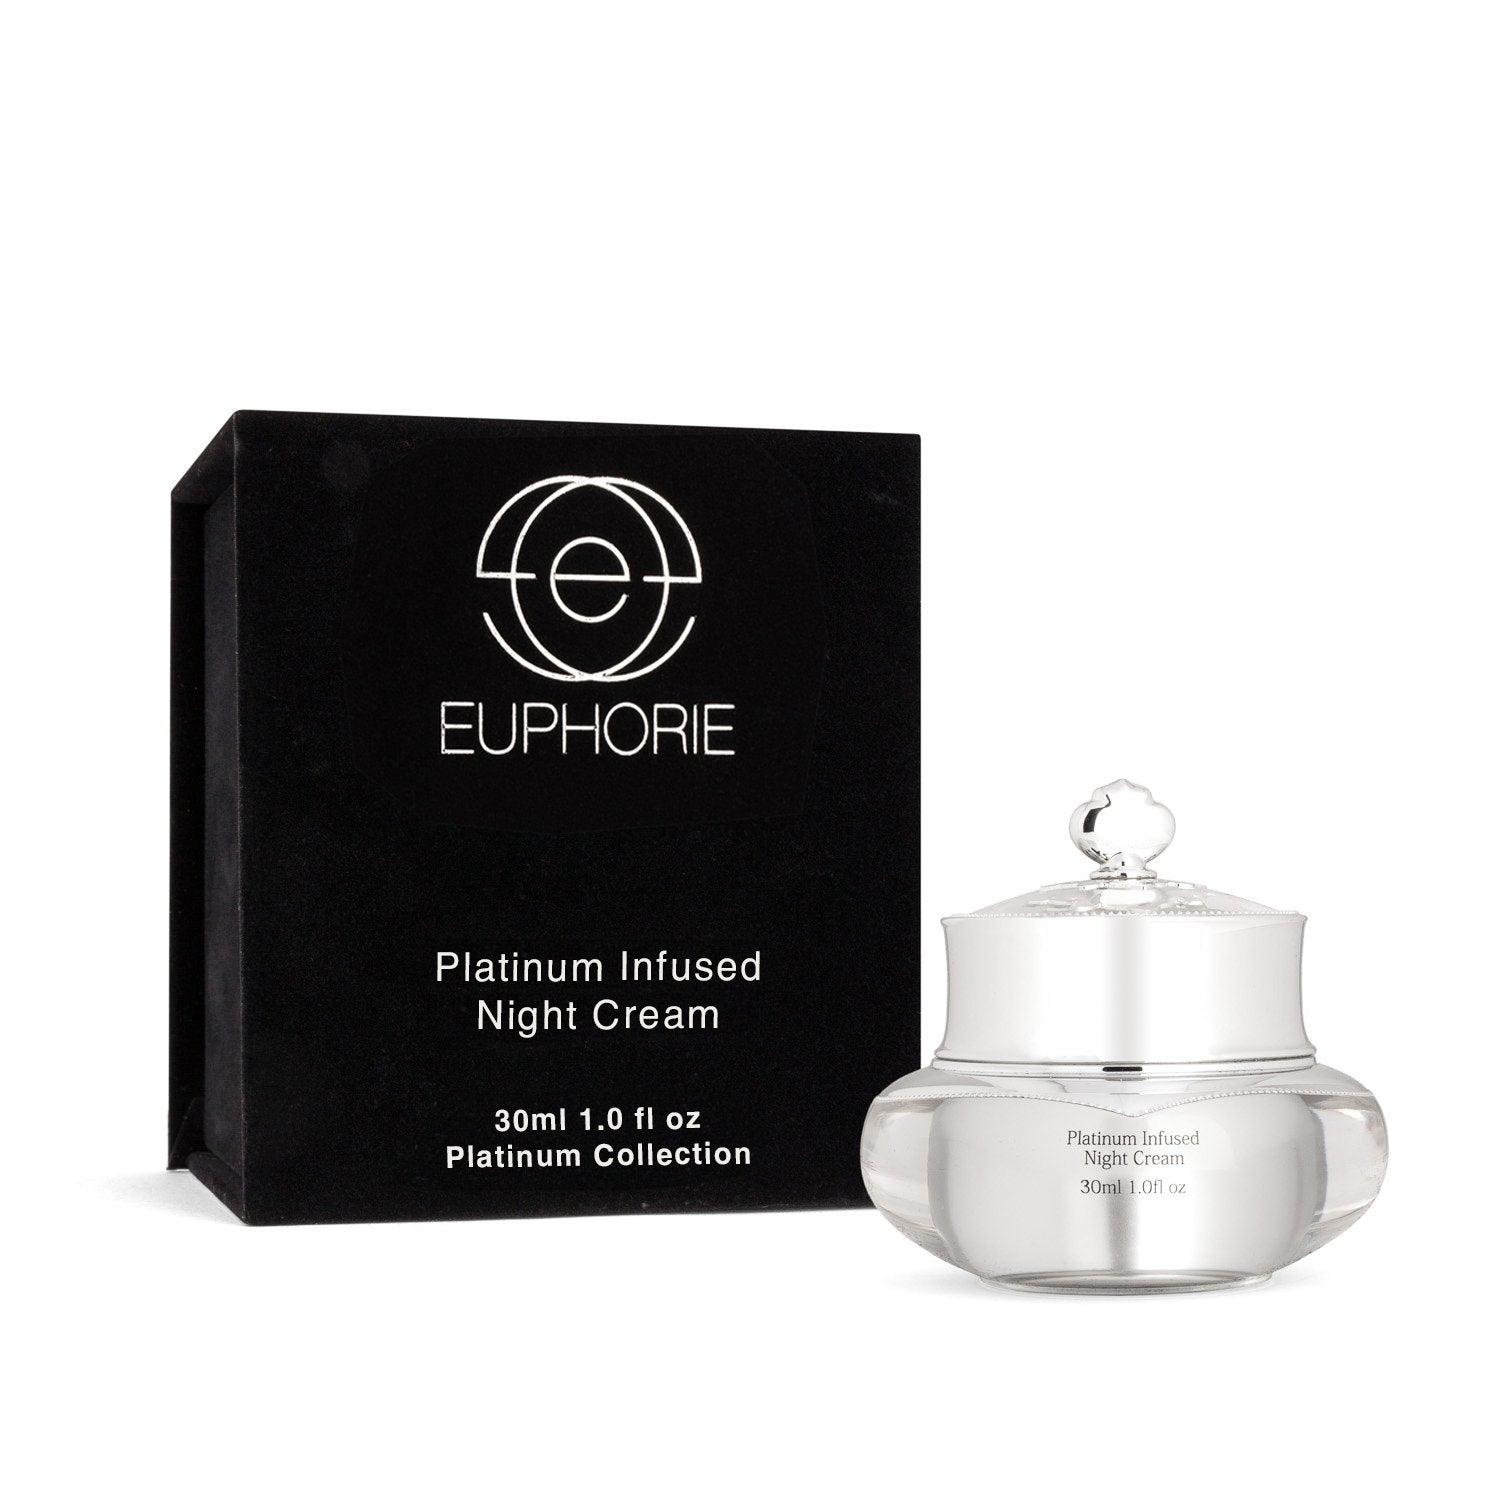 EUPHORIE - Platinum Infused  Rejuvenating Night Cream